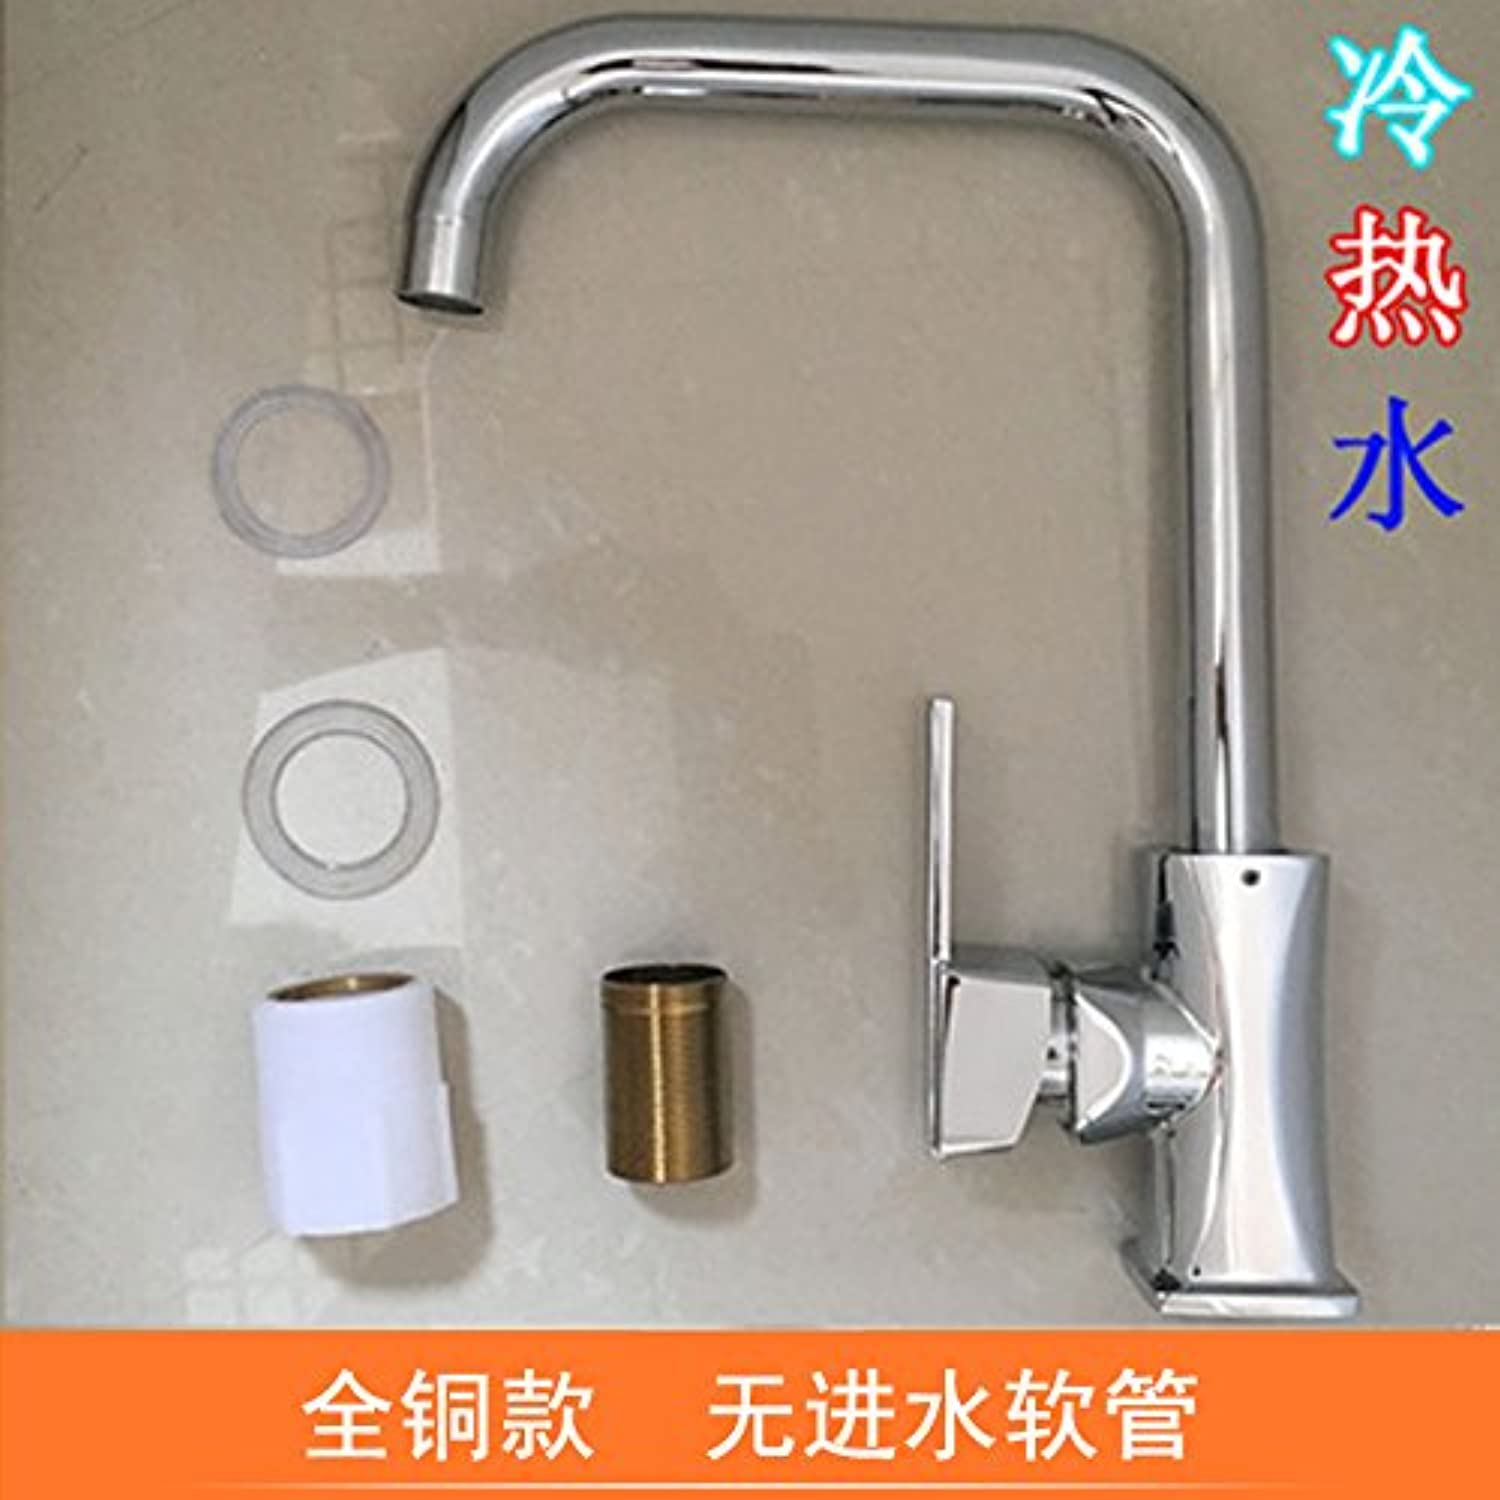 JWLT Kitchen faucets, vegetable pots, faucets, hot and cold flume, vegetable dishes, faucets, all copper valves, swivel faucets,Full copper (no water hose)